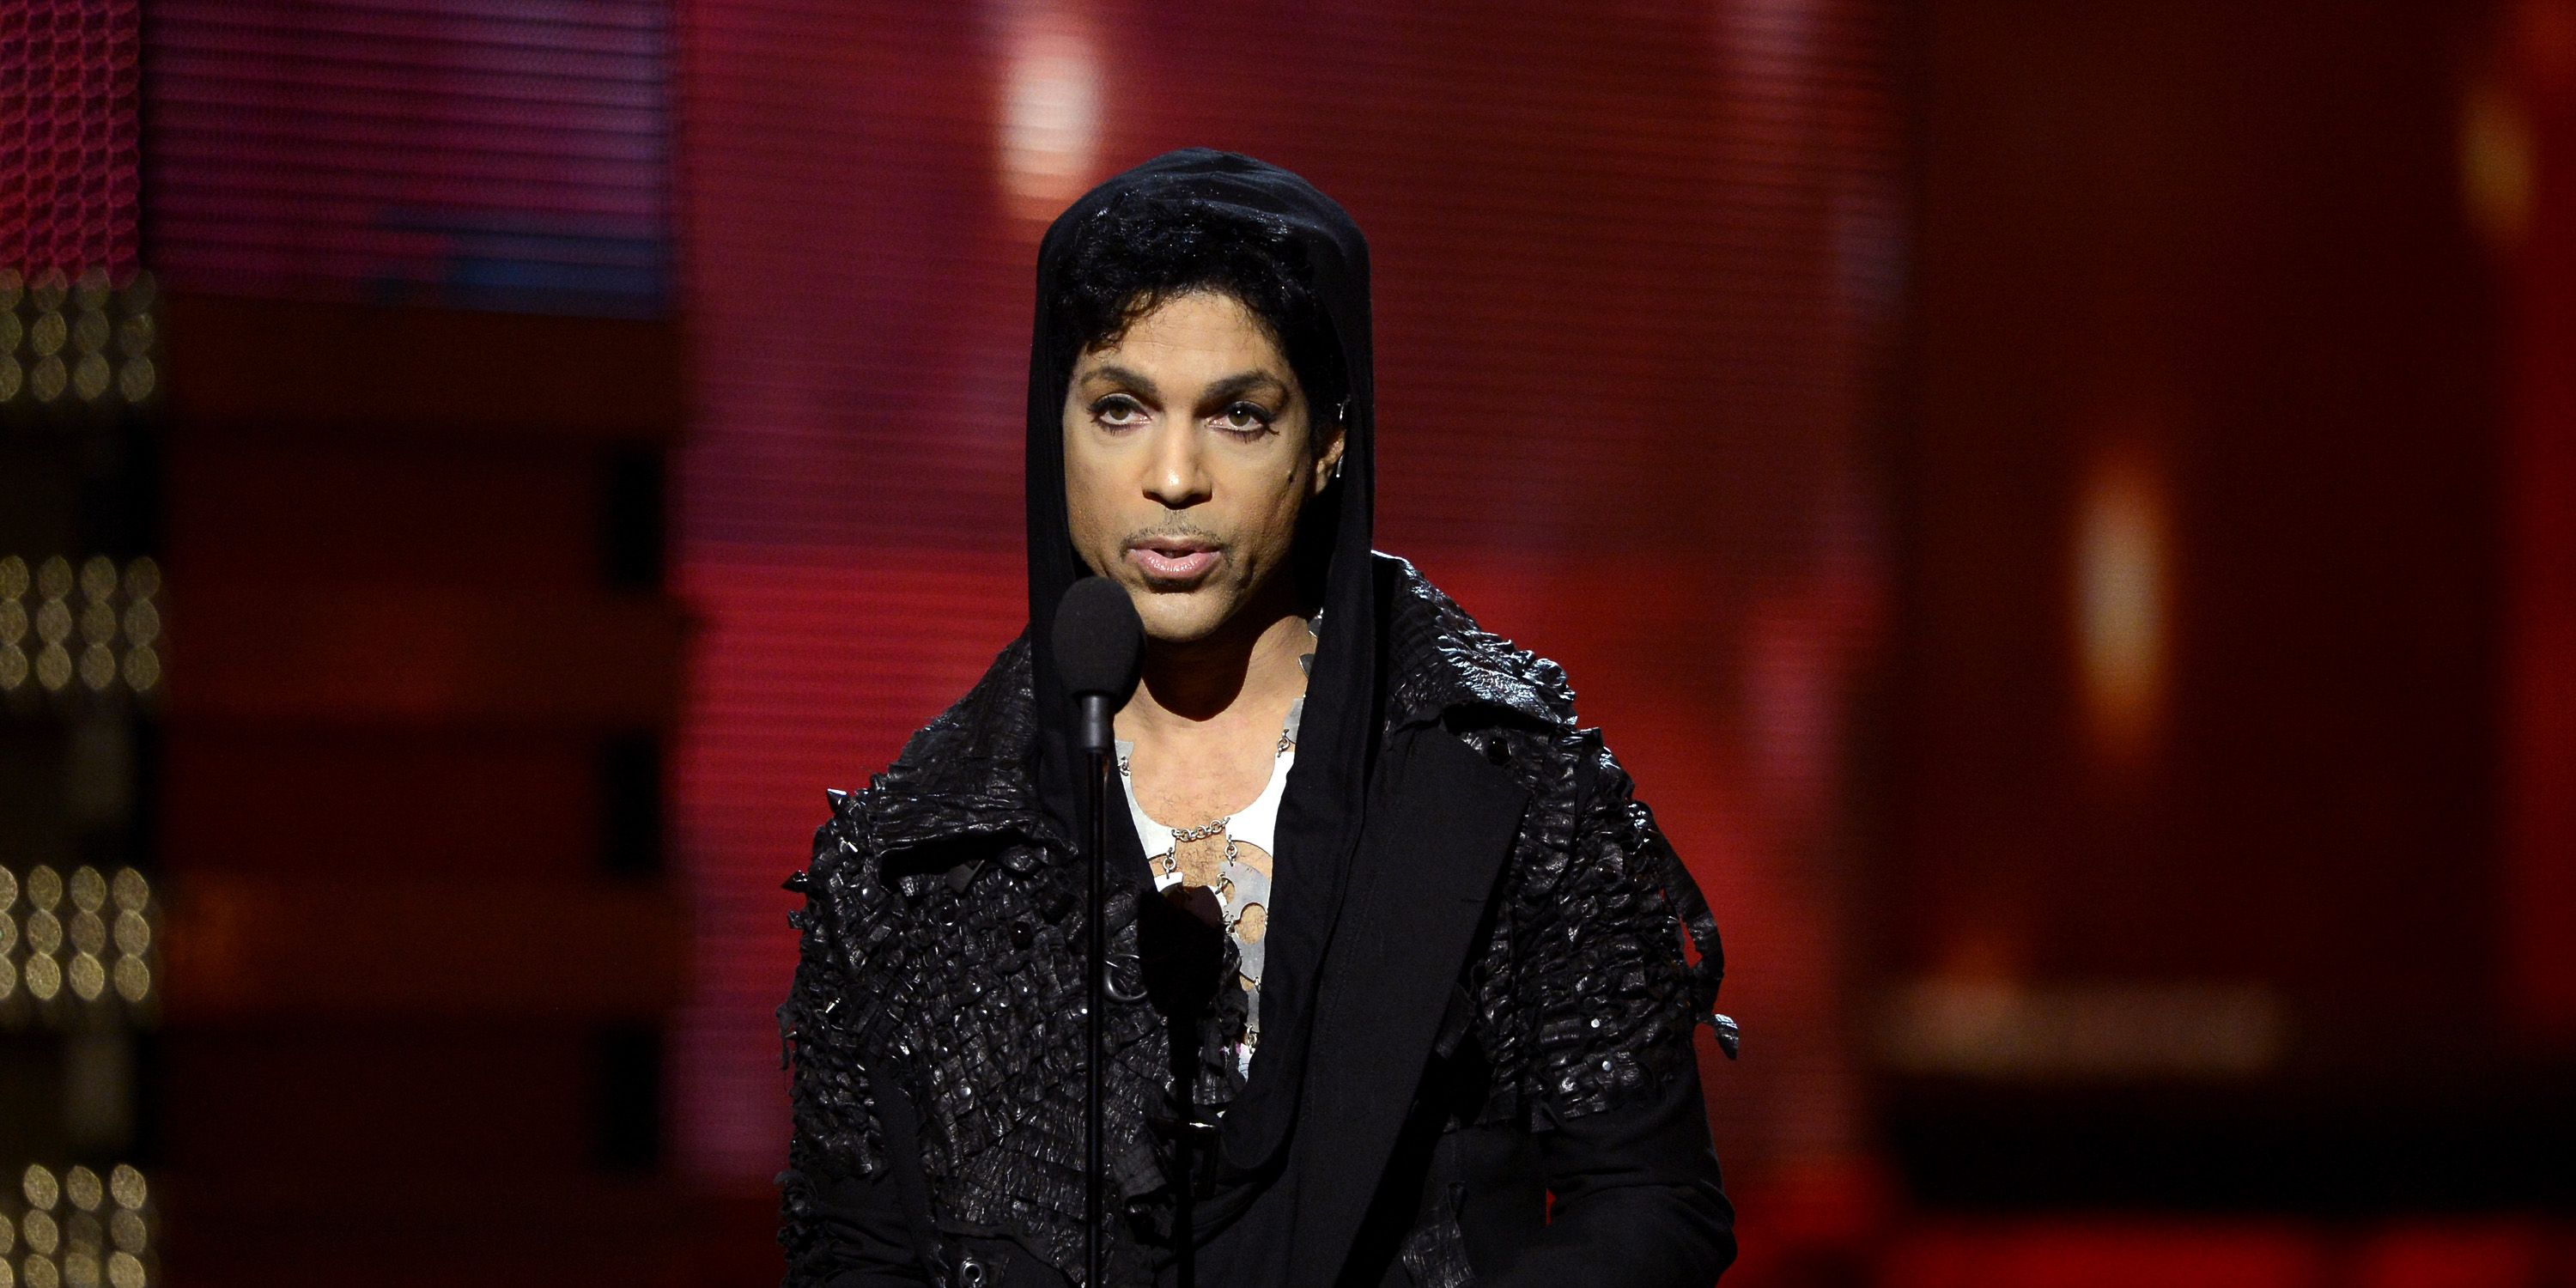 Prince speaks onstage at the 55th Annual GRAMMY Awards